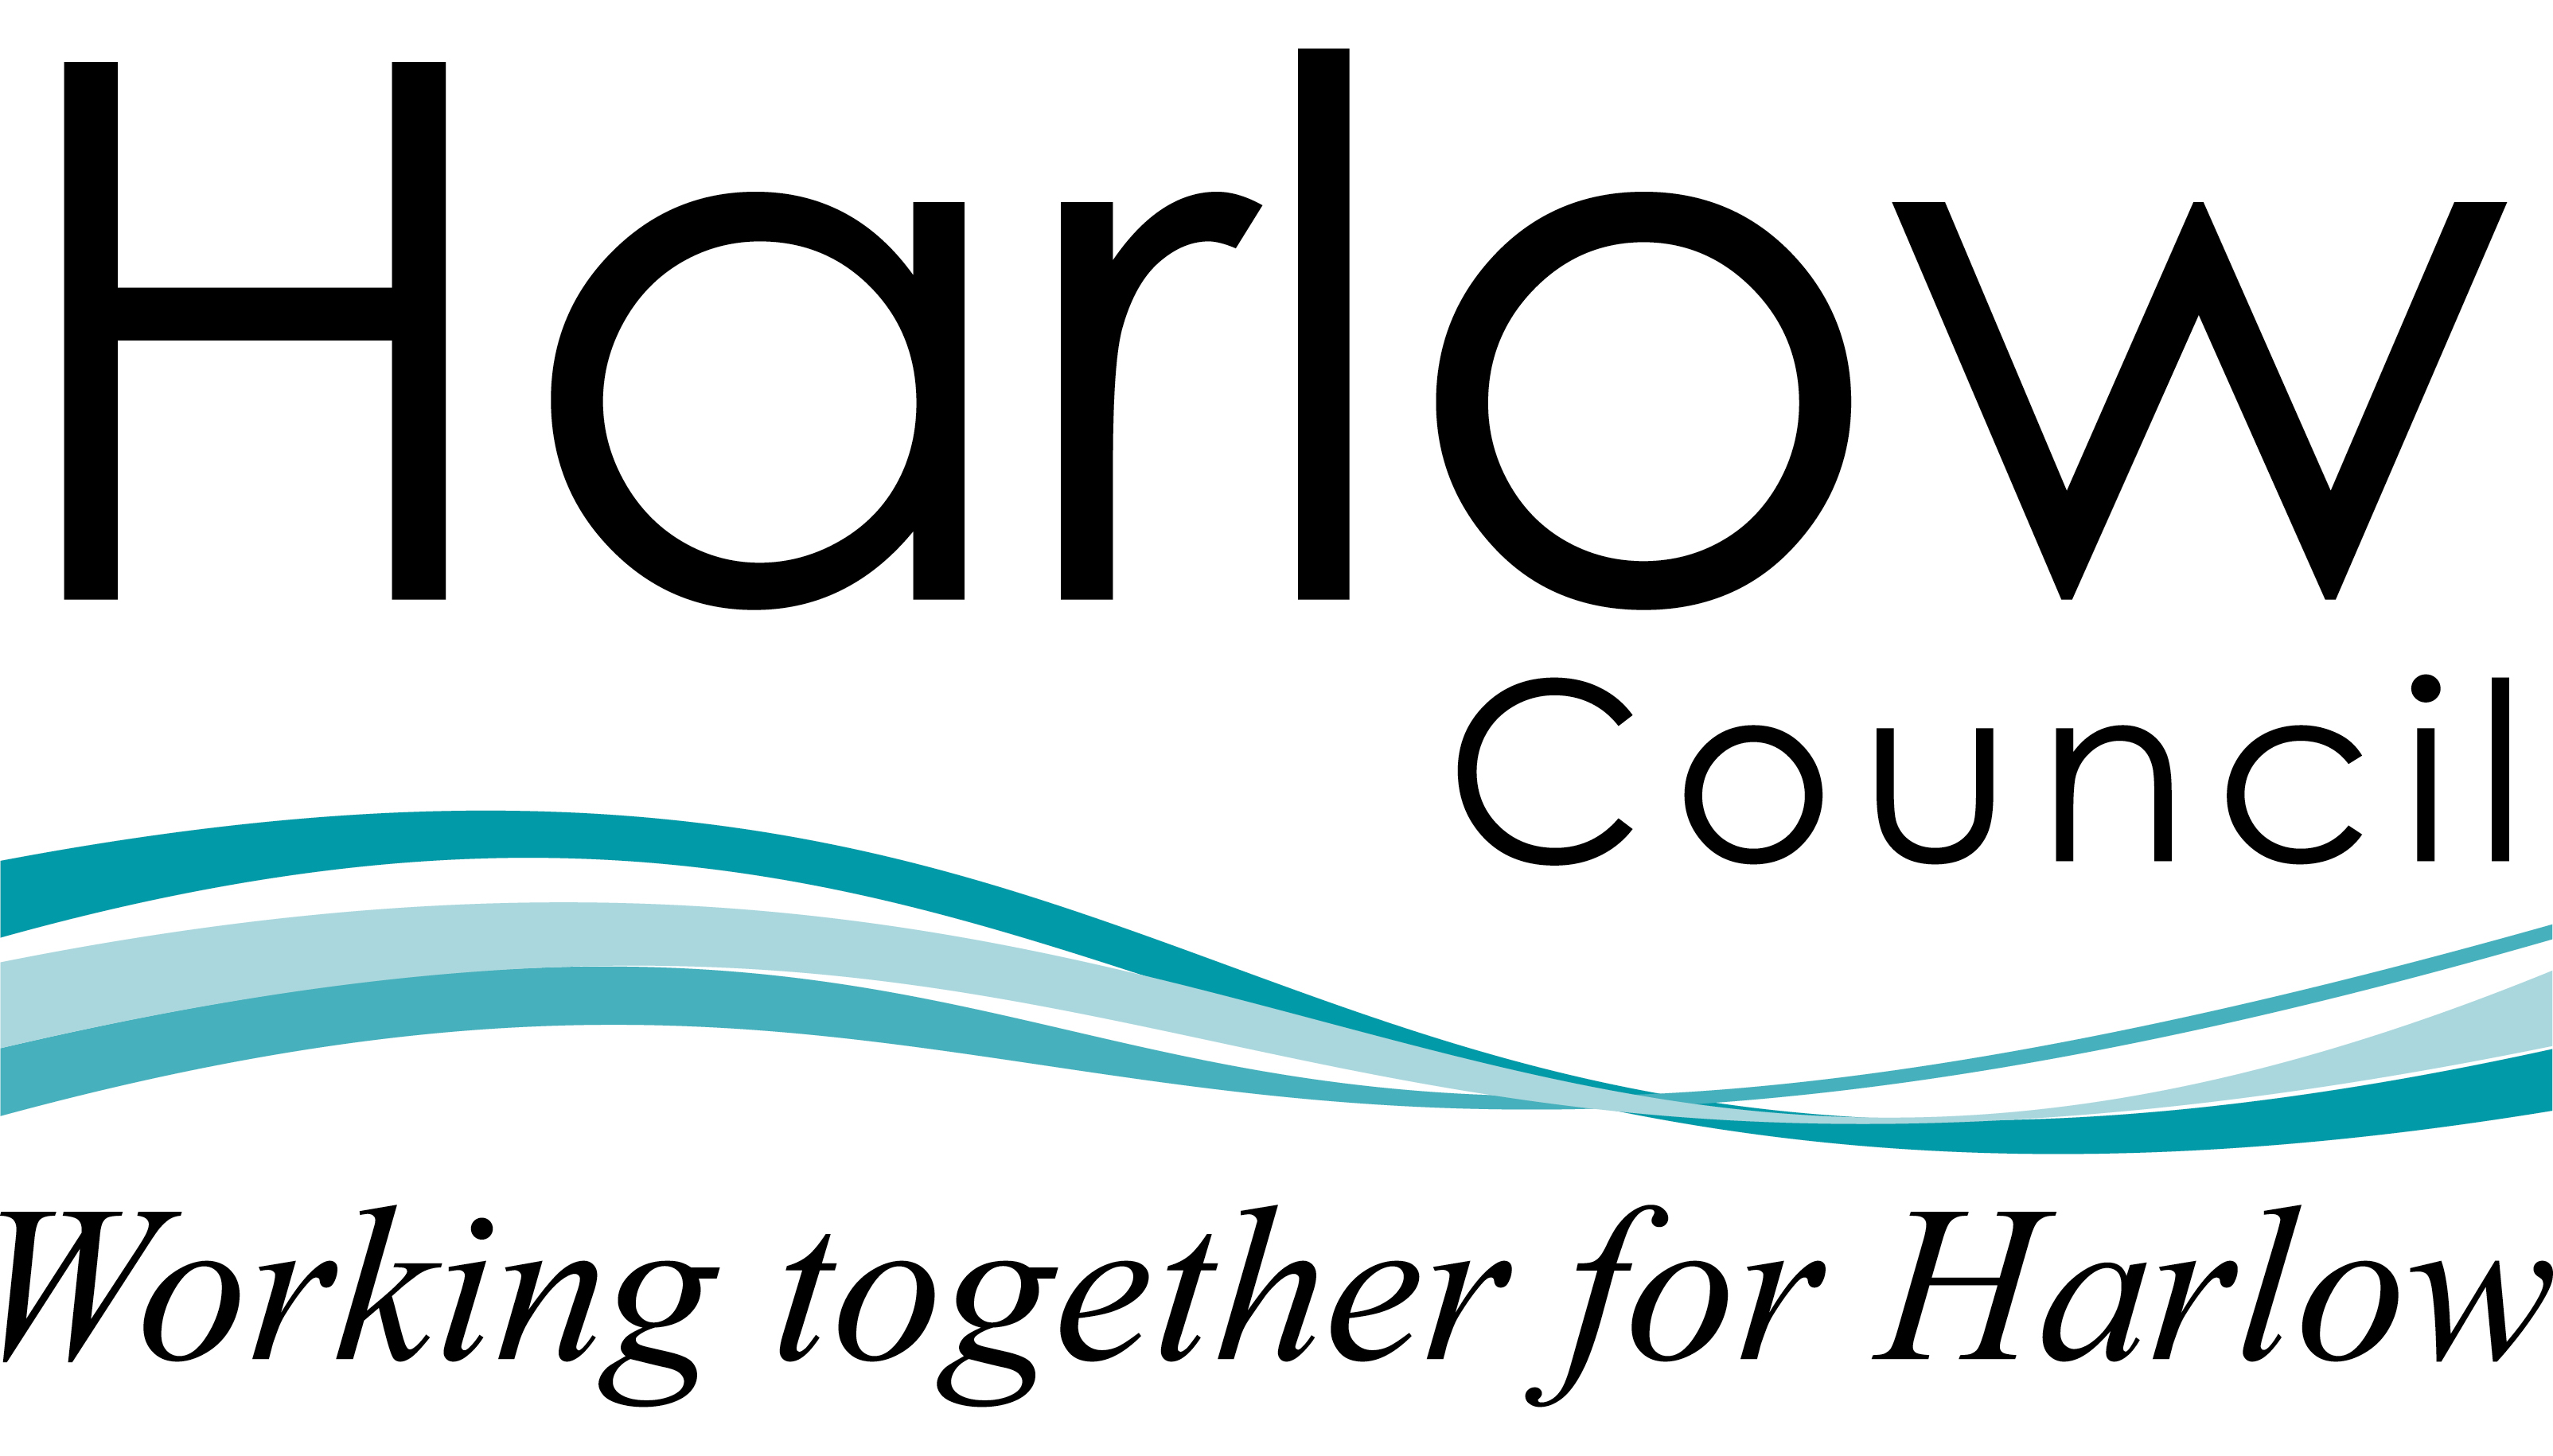 Harlow Council logo link leads to Harlow Council Website